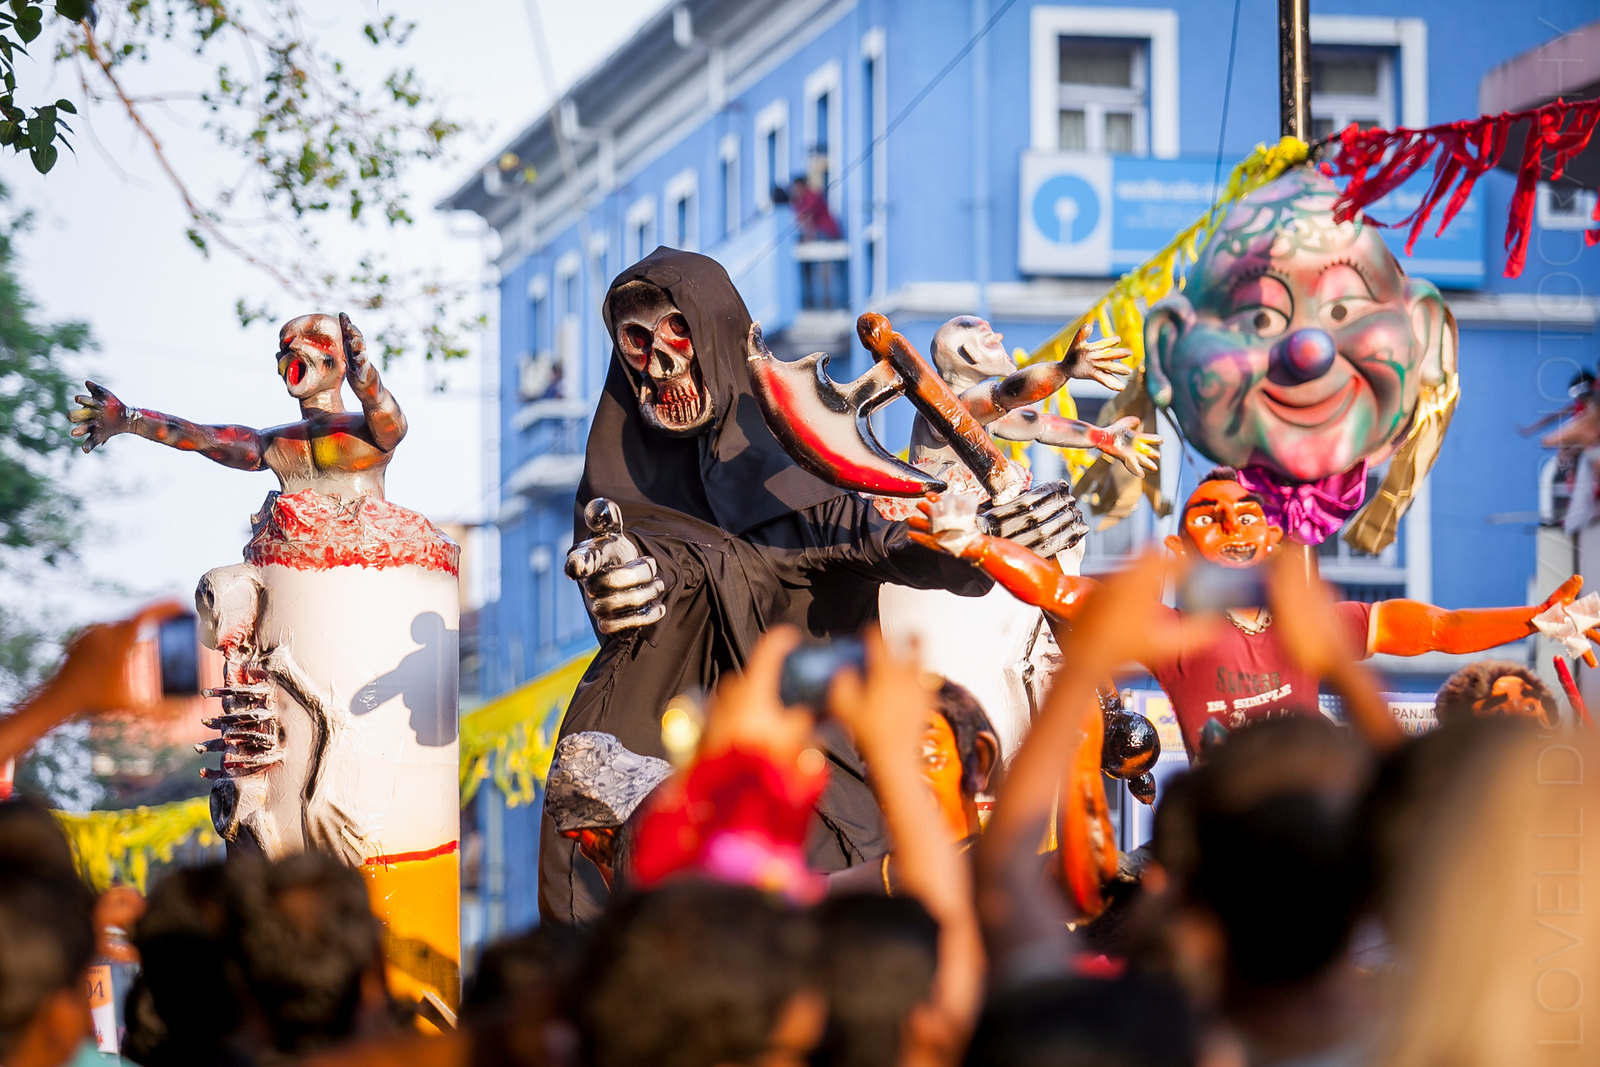 Viva Carnaval! — Scenes from the Goa Carnival 2015!